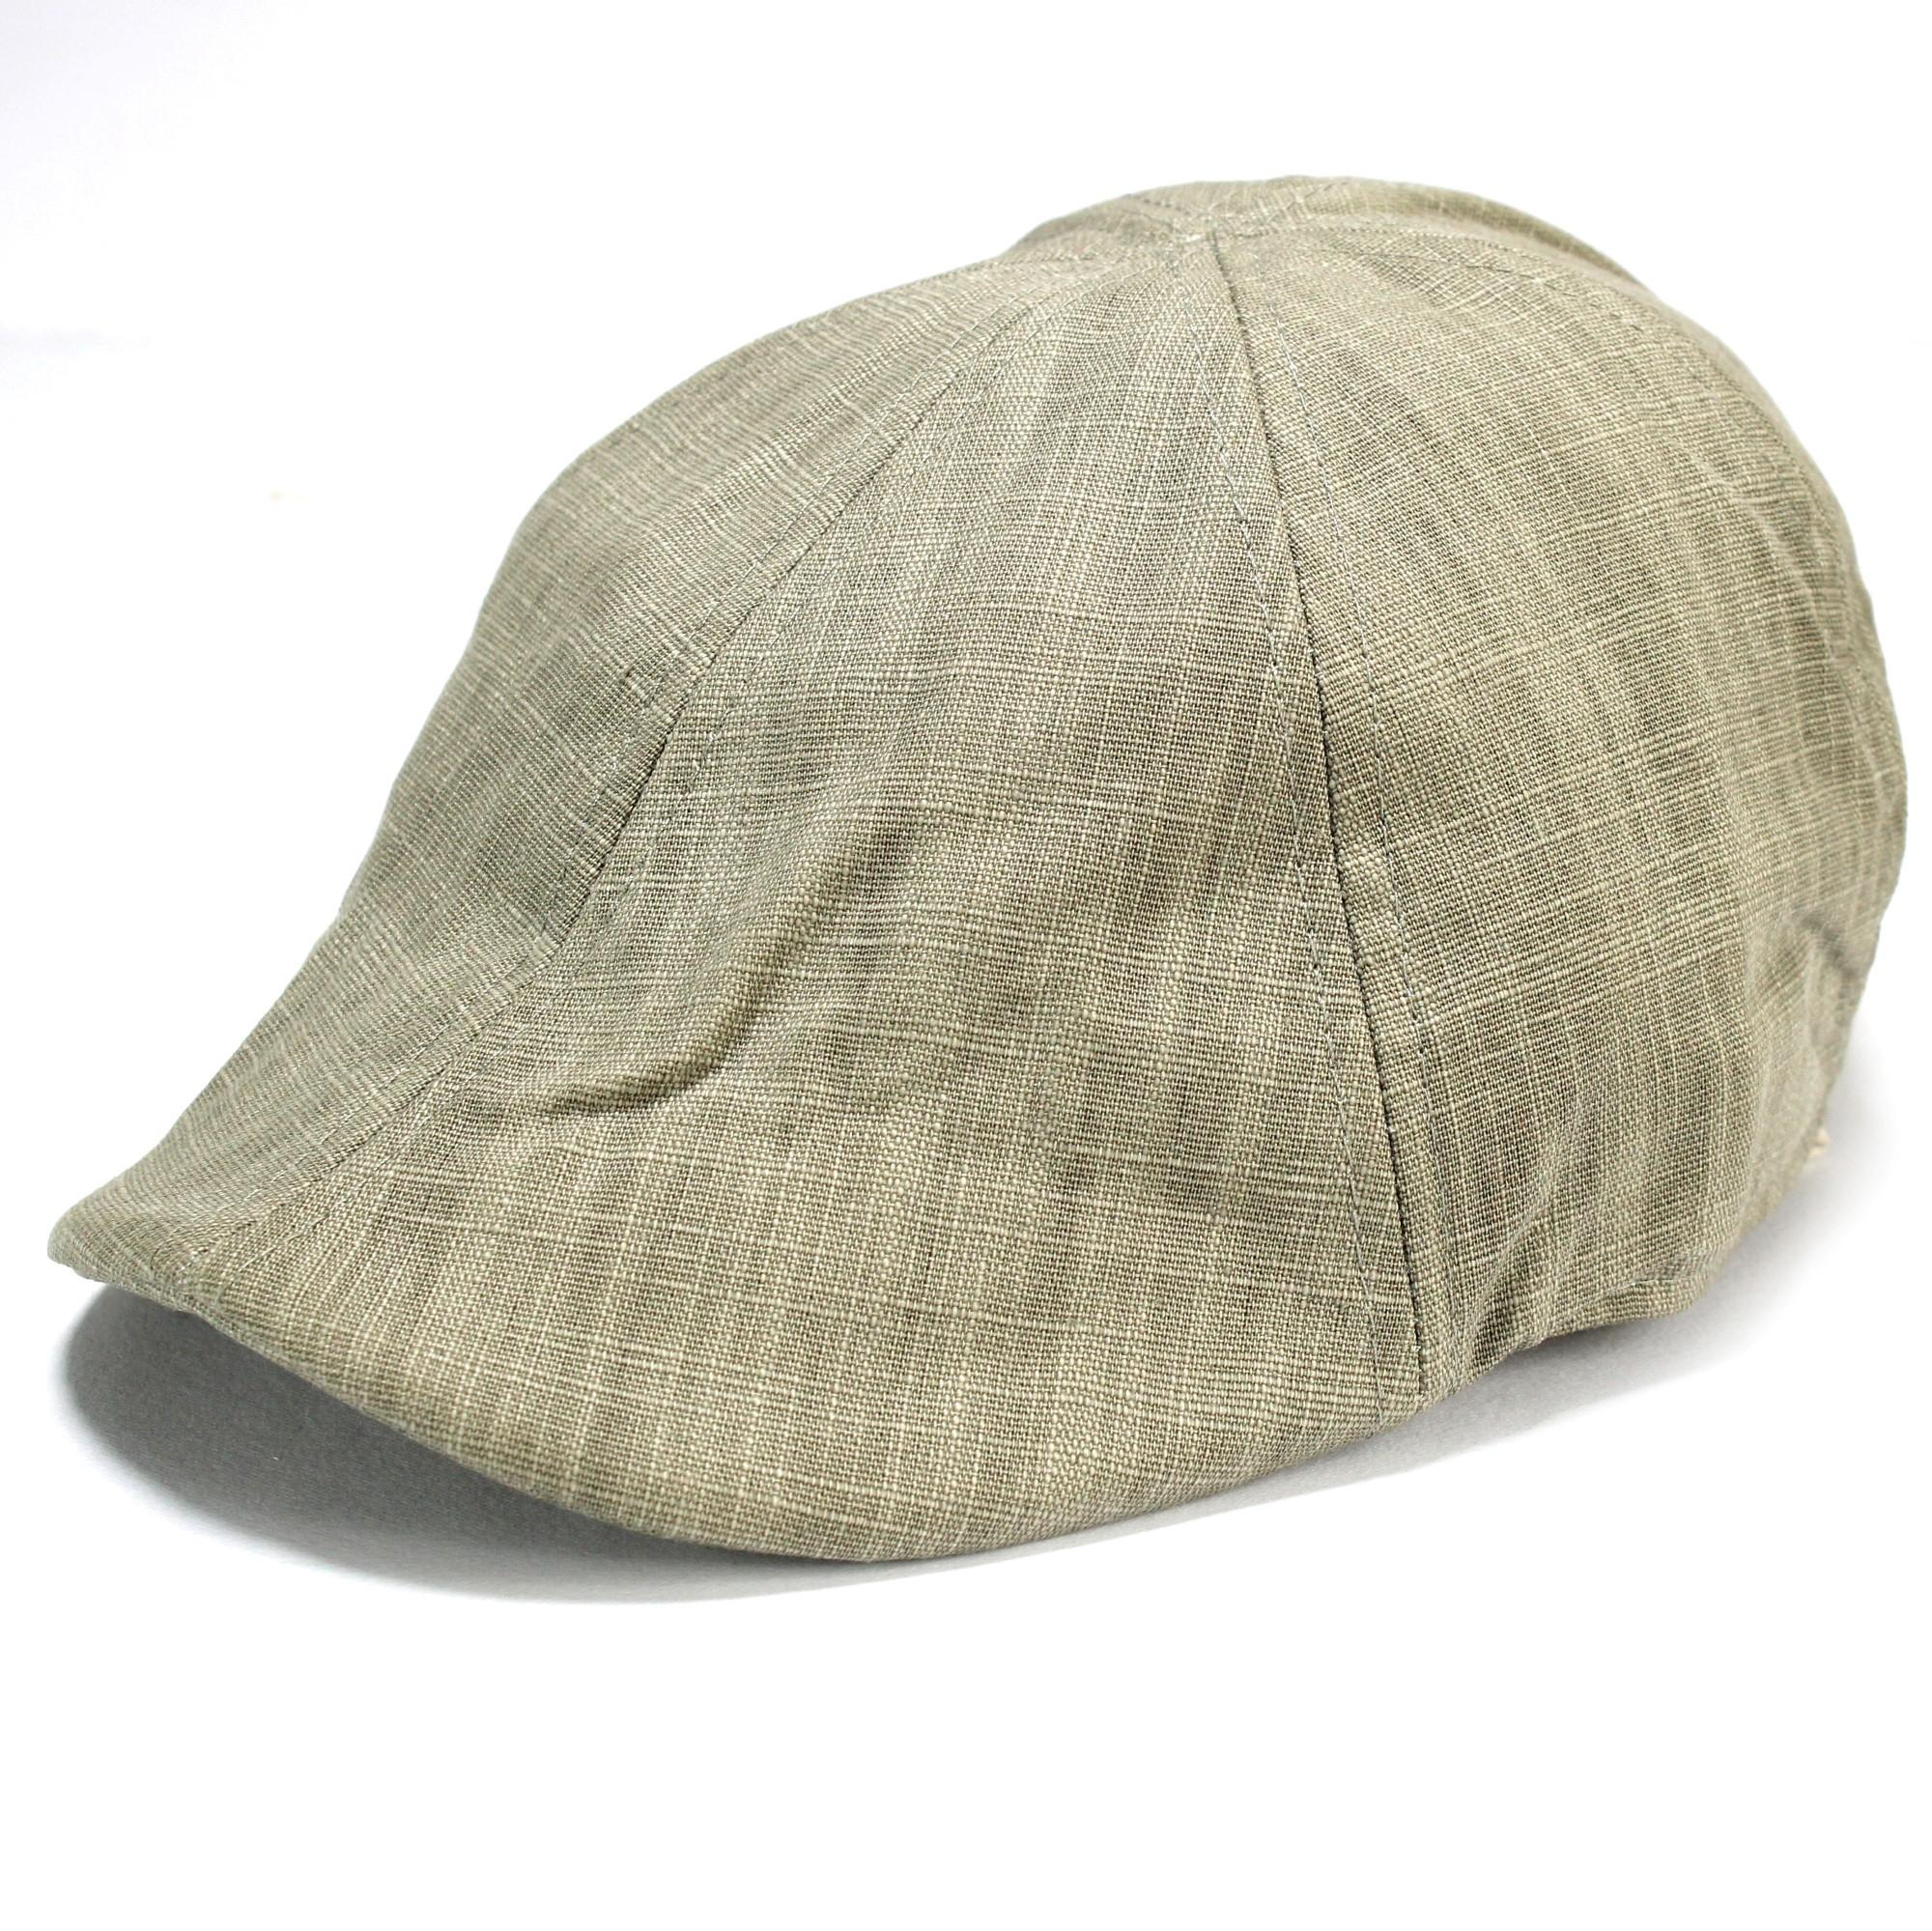 Buy Men s Hats Online At Best Price From Daraz.com.np 8f9c1f6950be